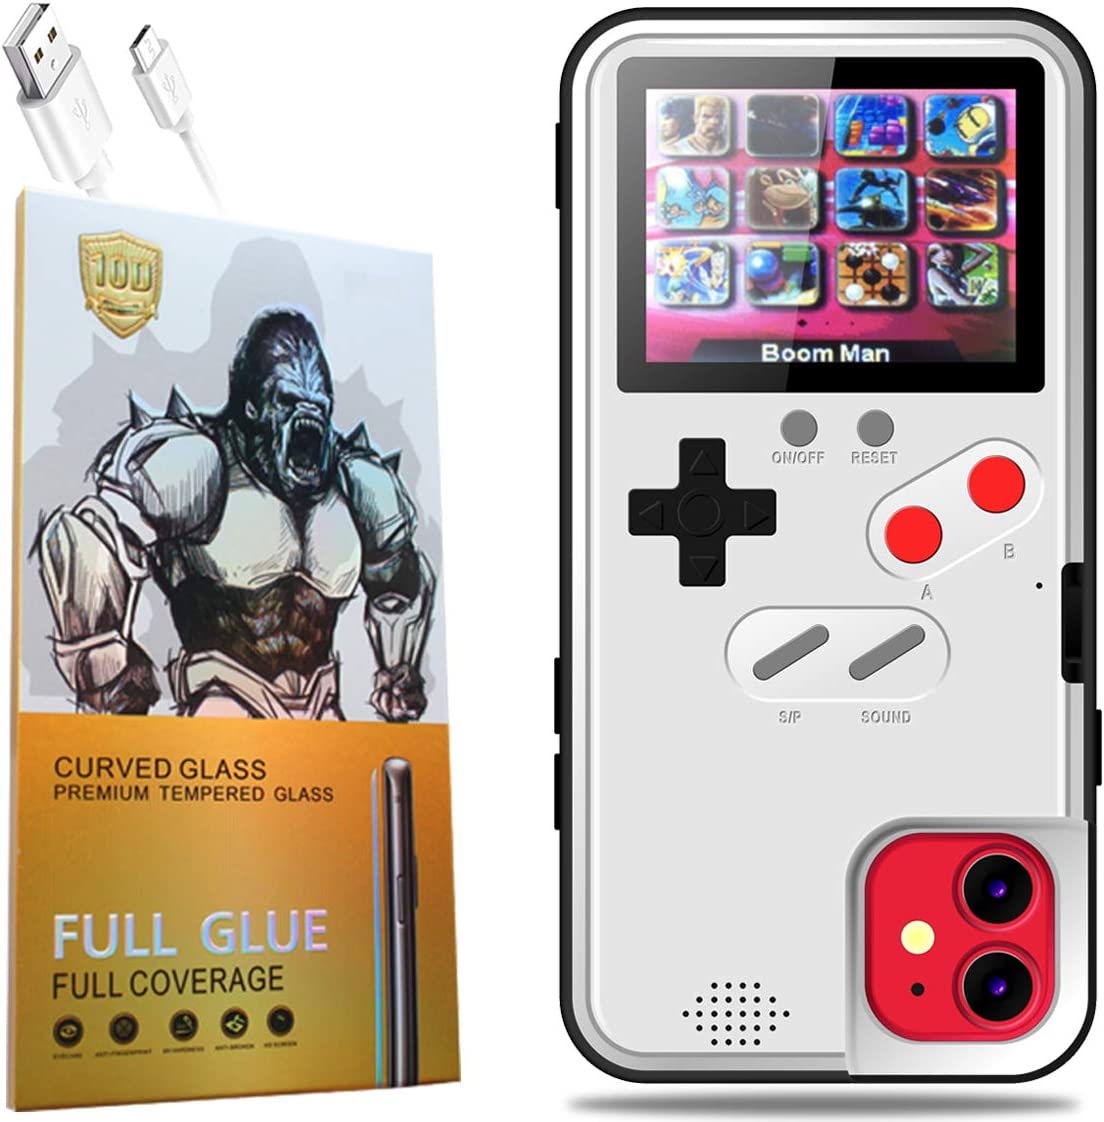 Gameboy Phone Case for iPhone with Clear Glass Screen Protector,Handheld Retro 36 Classic Games,Color Video Display Game Case for iPhone,Anti-Scratch Shockproof Phone Cover (White, iPhone 12 Pro Max)